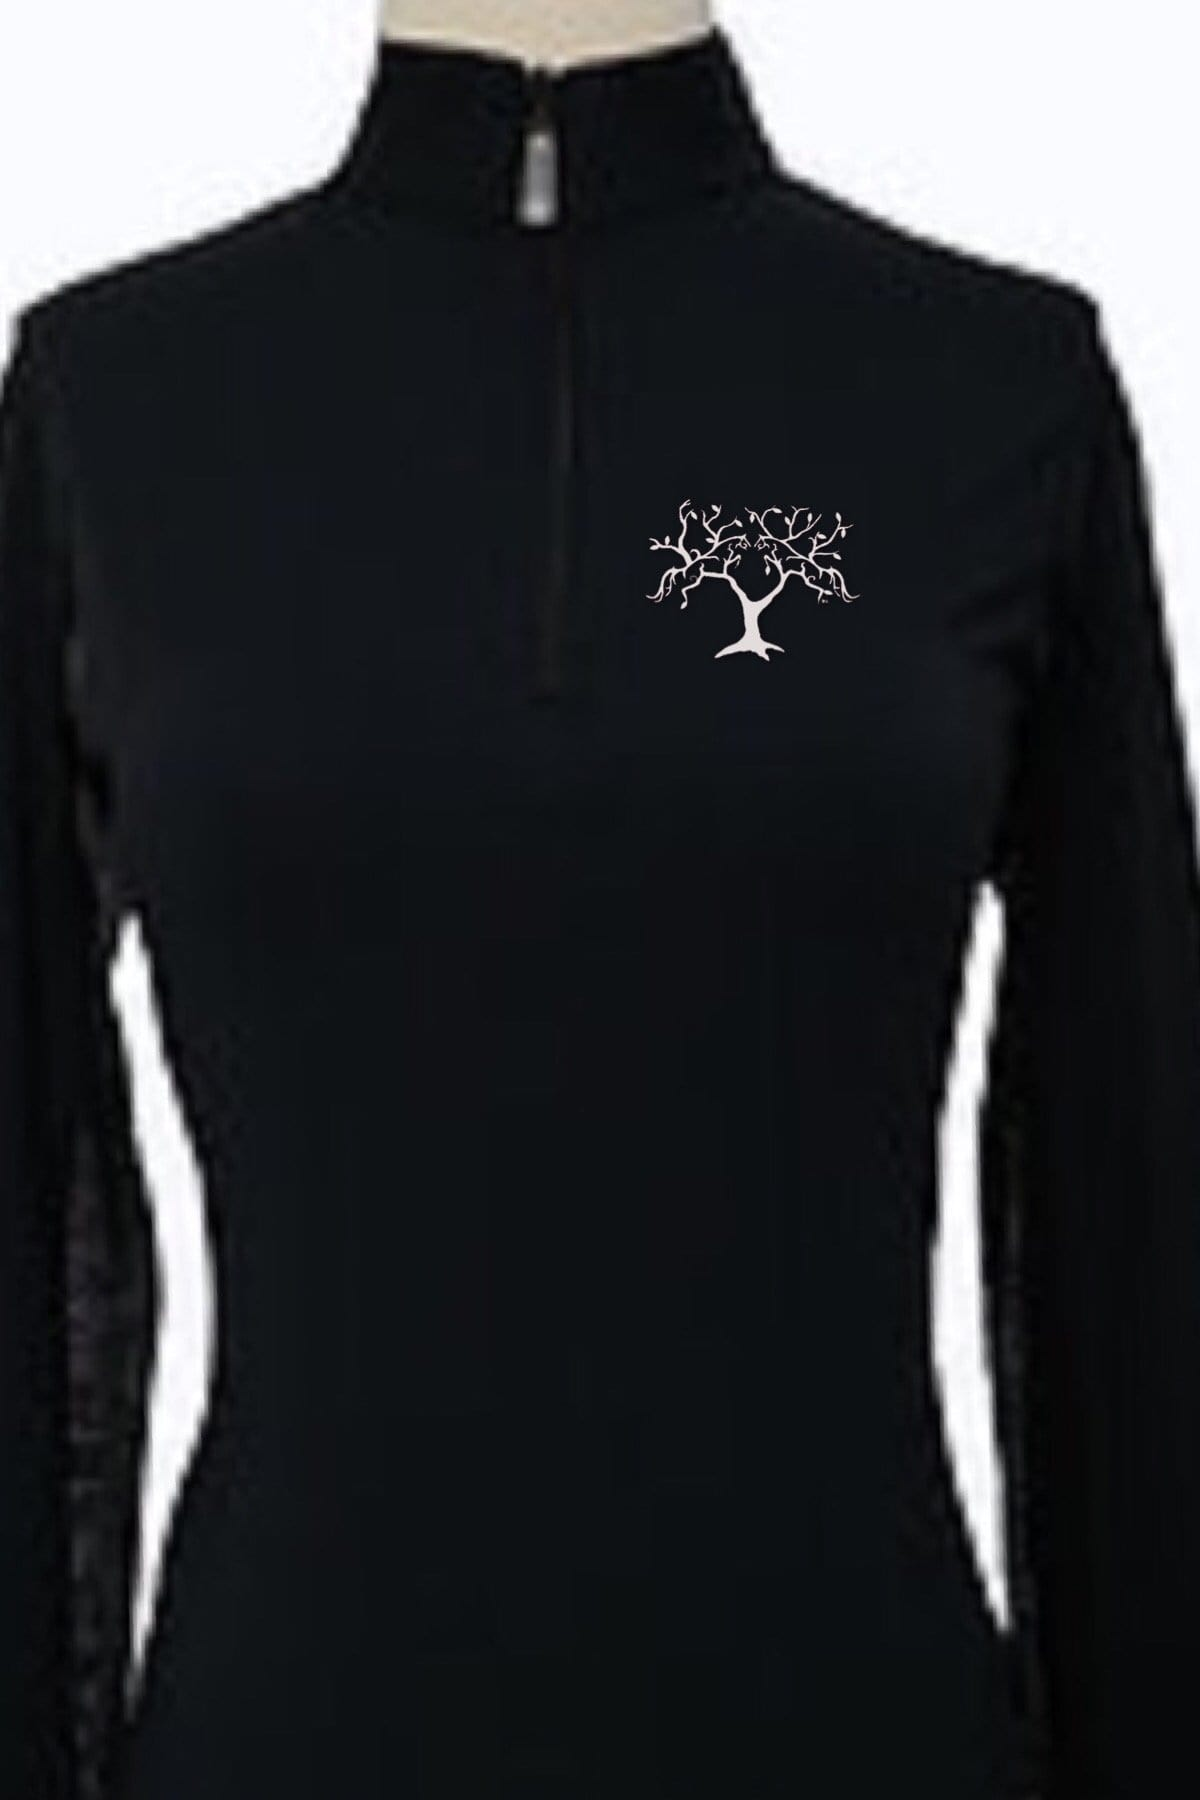 Equestrian Team Apparel Custom Team Shirts Youth / EIS Black Millcreek equestrian team apparel online tack store mobile tack store custom farm apparel custom show stable clothing equestrian lifestyle horse show clothing riding clothes horses equestrian tack store